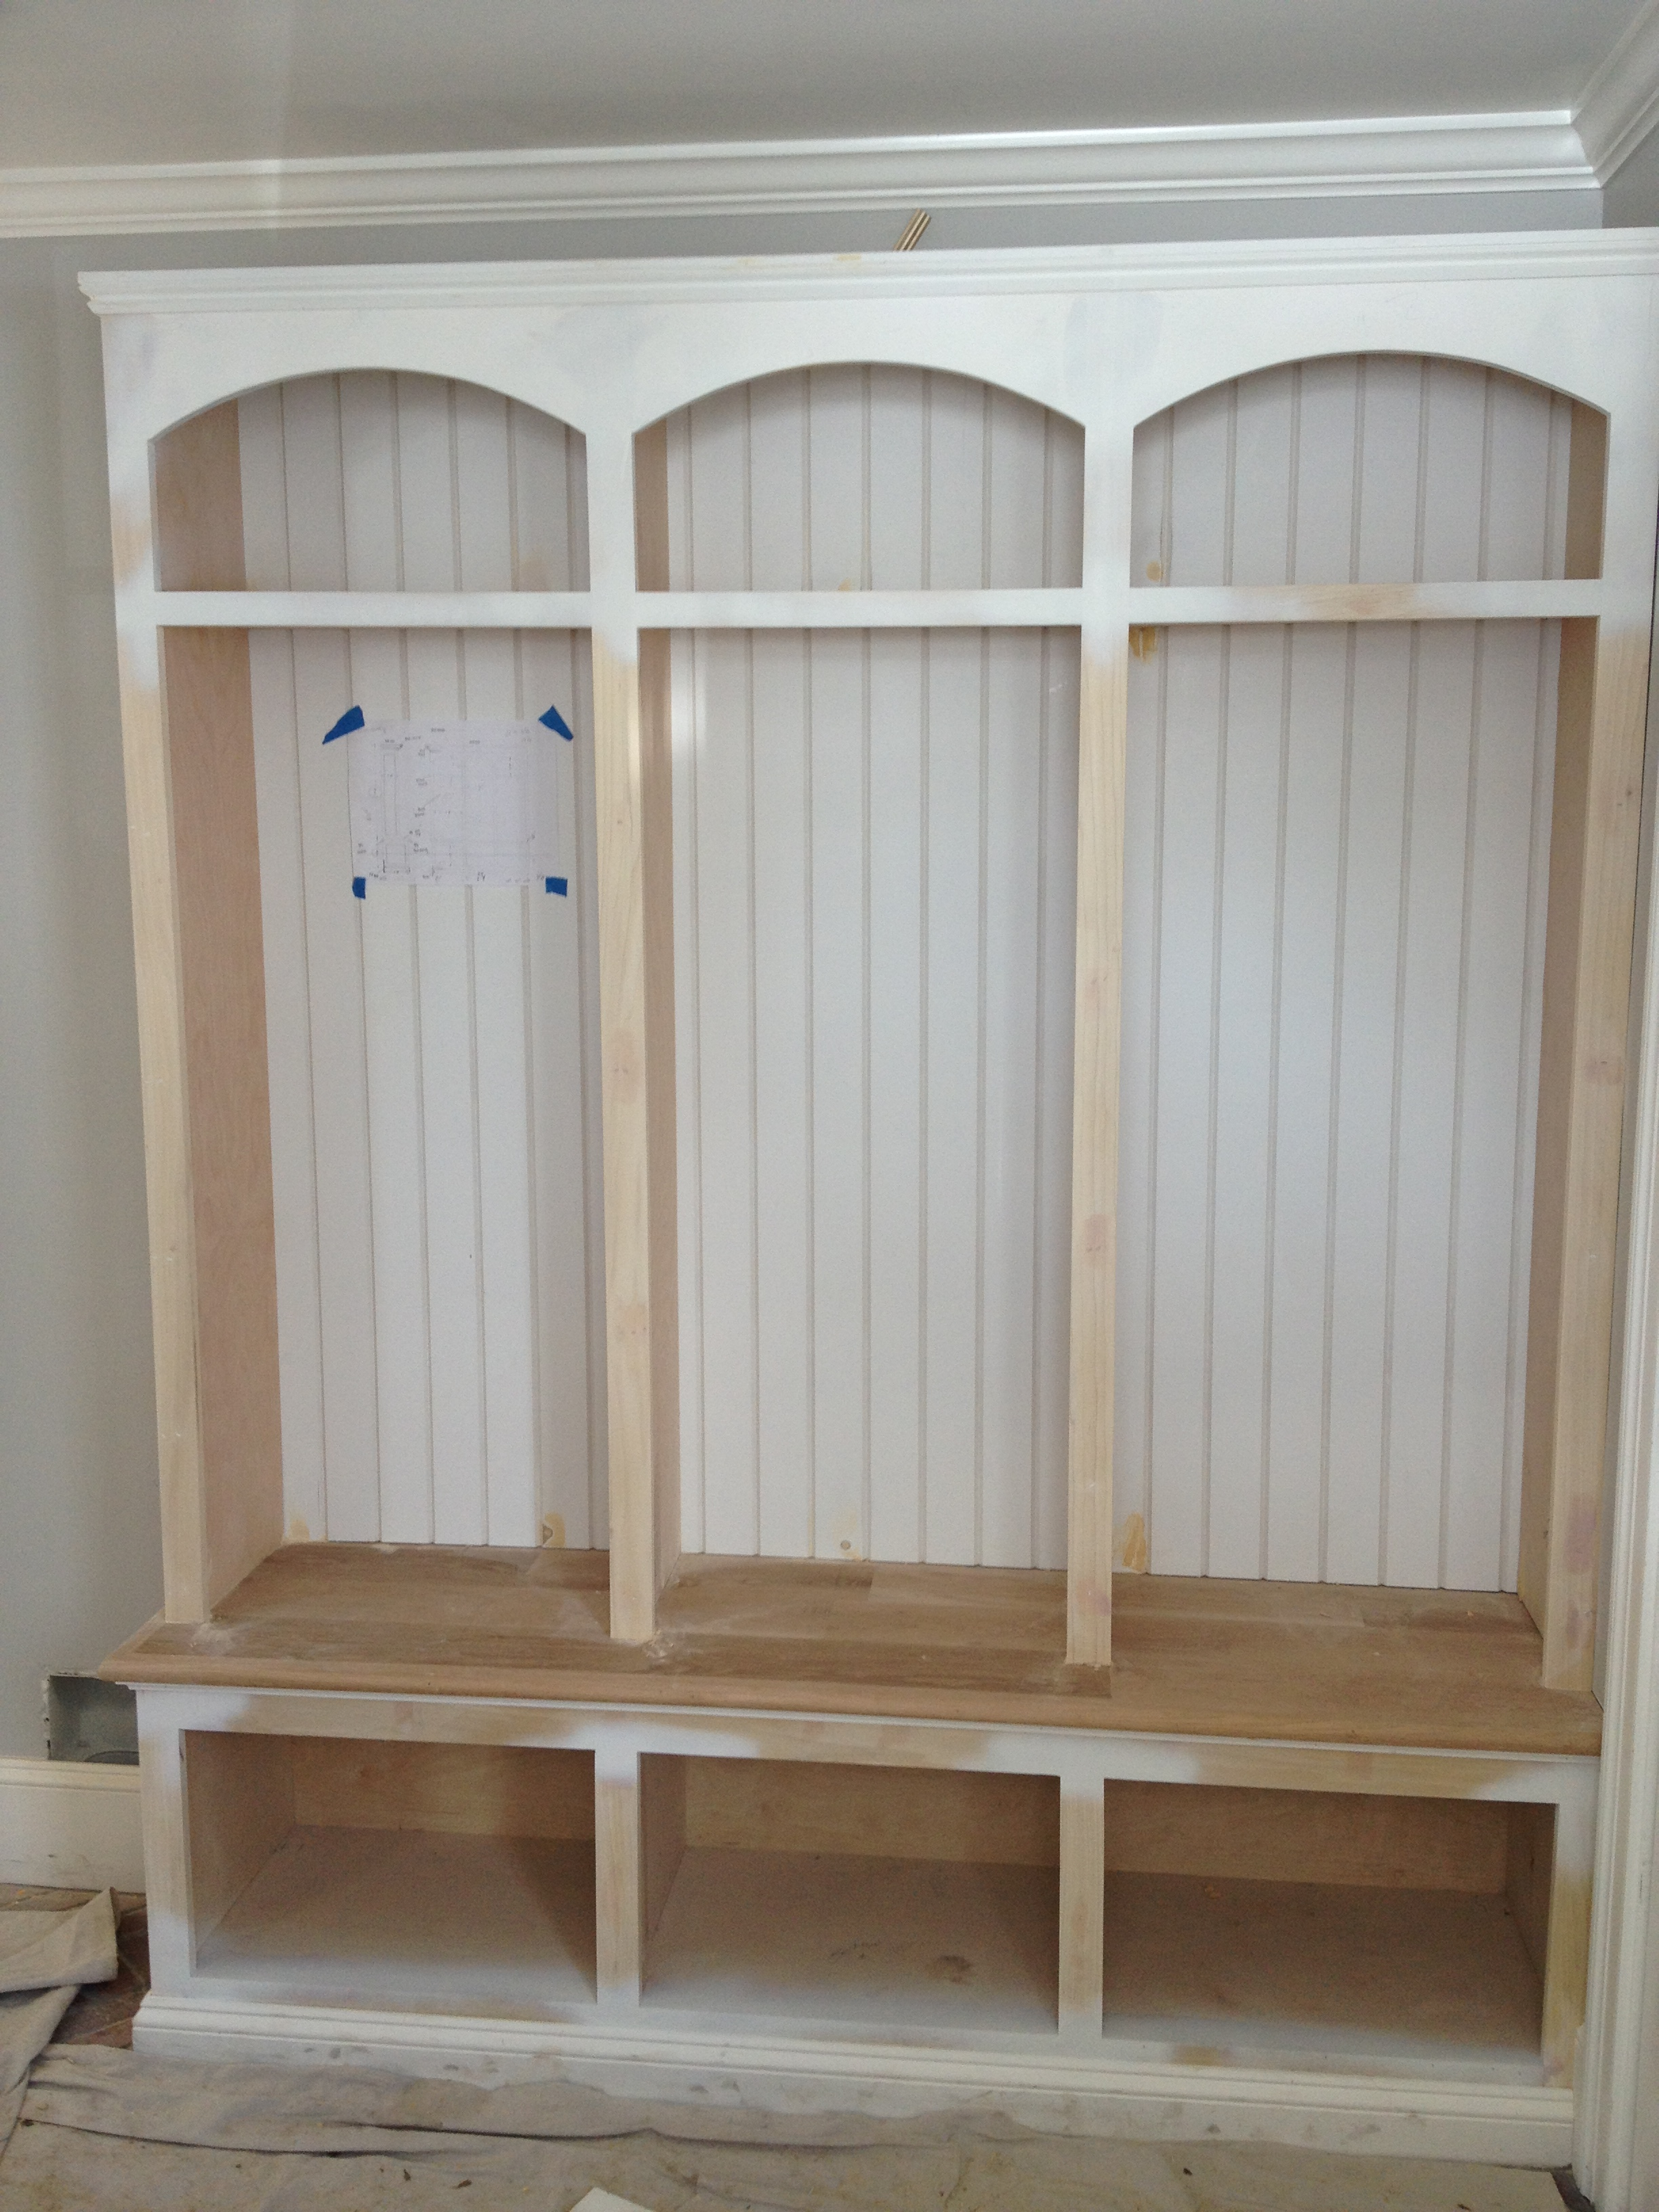 Mudroom cubbies ideas plans diy how to make nostalgic67ufr for Storage room plan